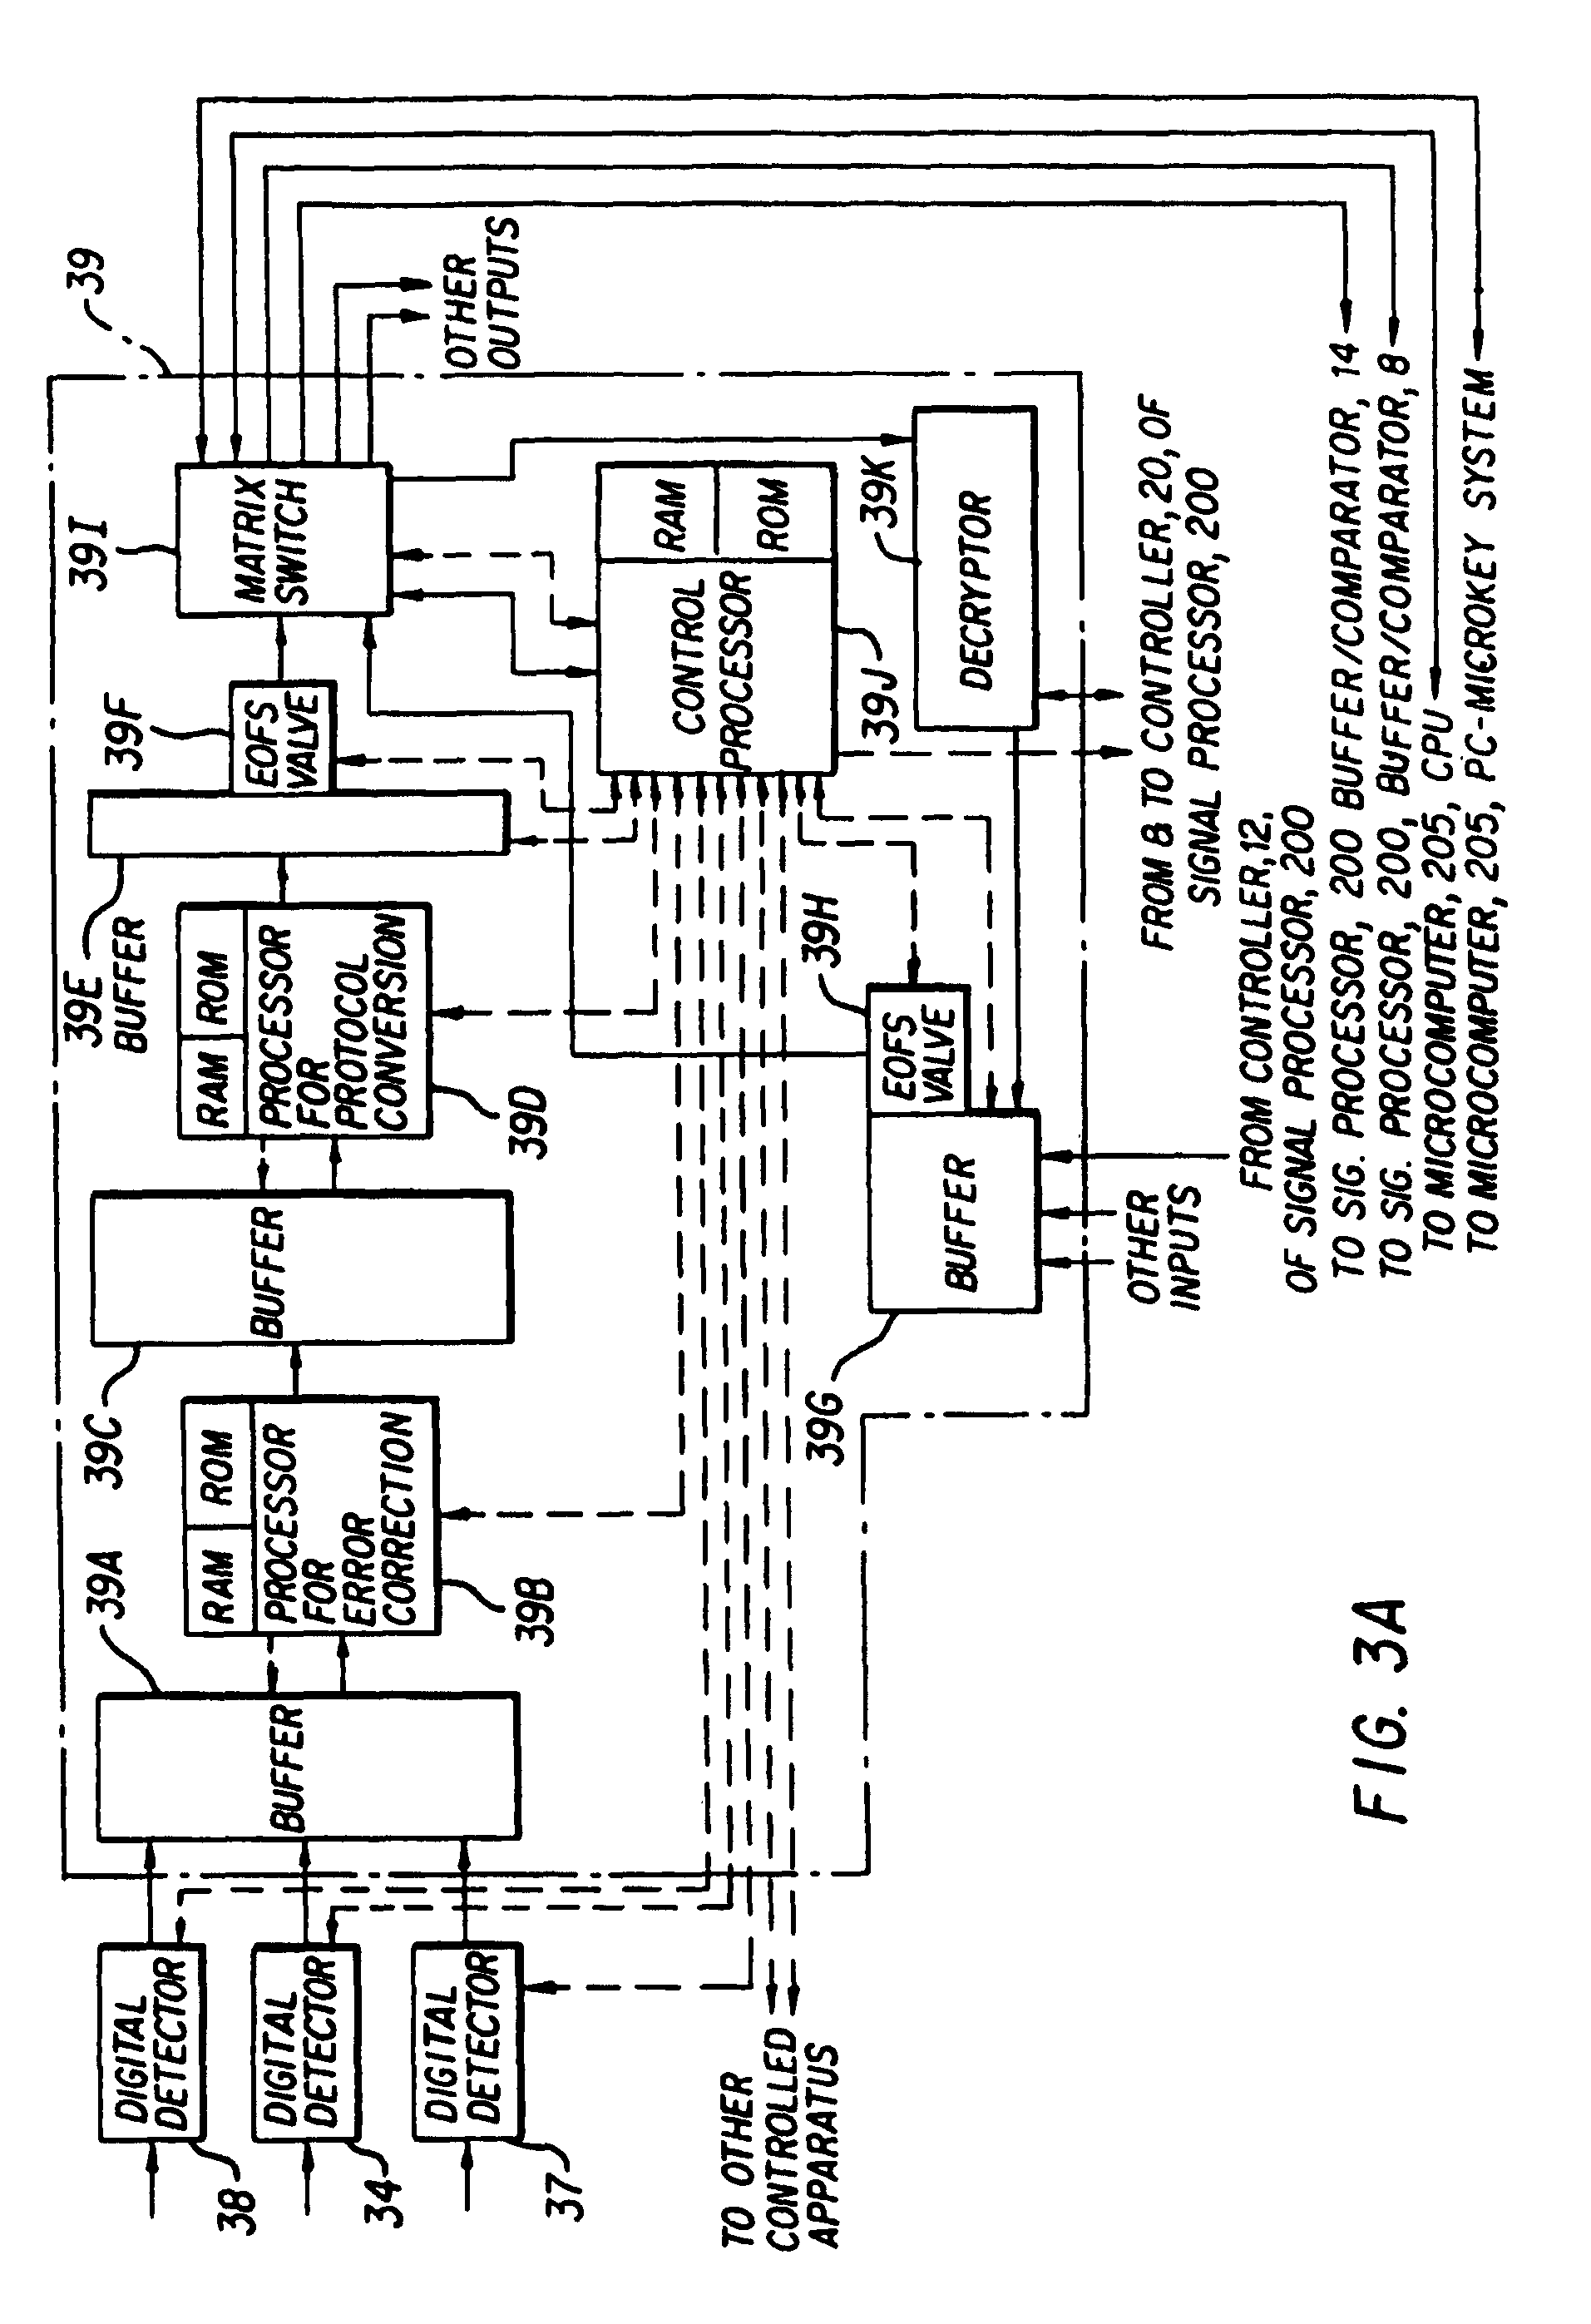 Us7793332b1 Signal Processing Apparatus And Methods Google Patents Oliver 1600 Wiring Diagram